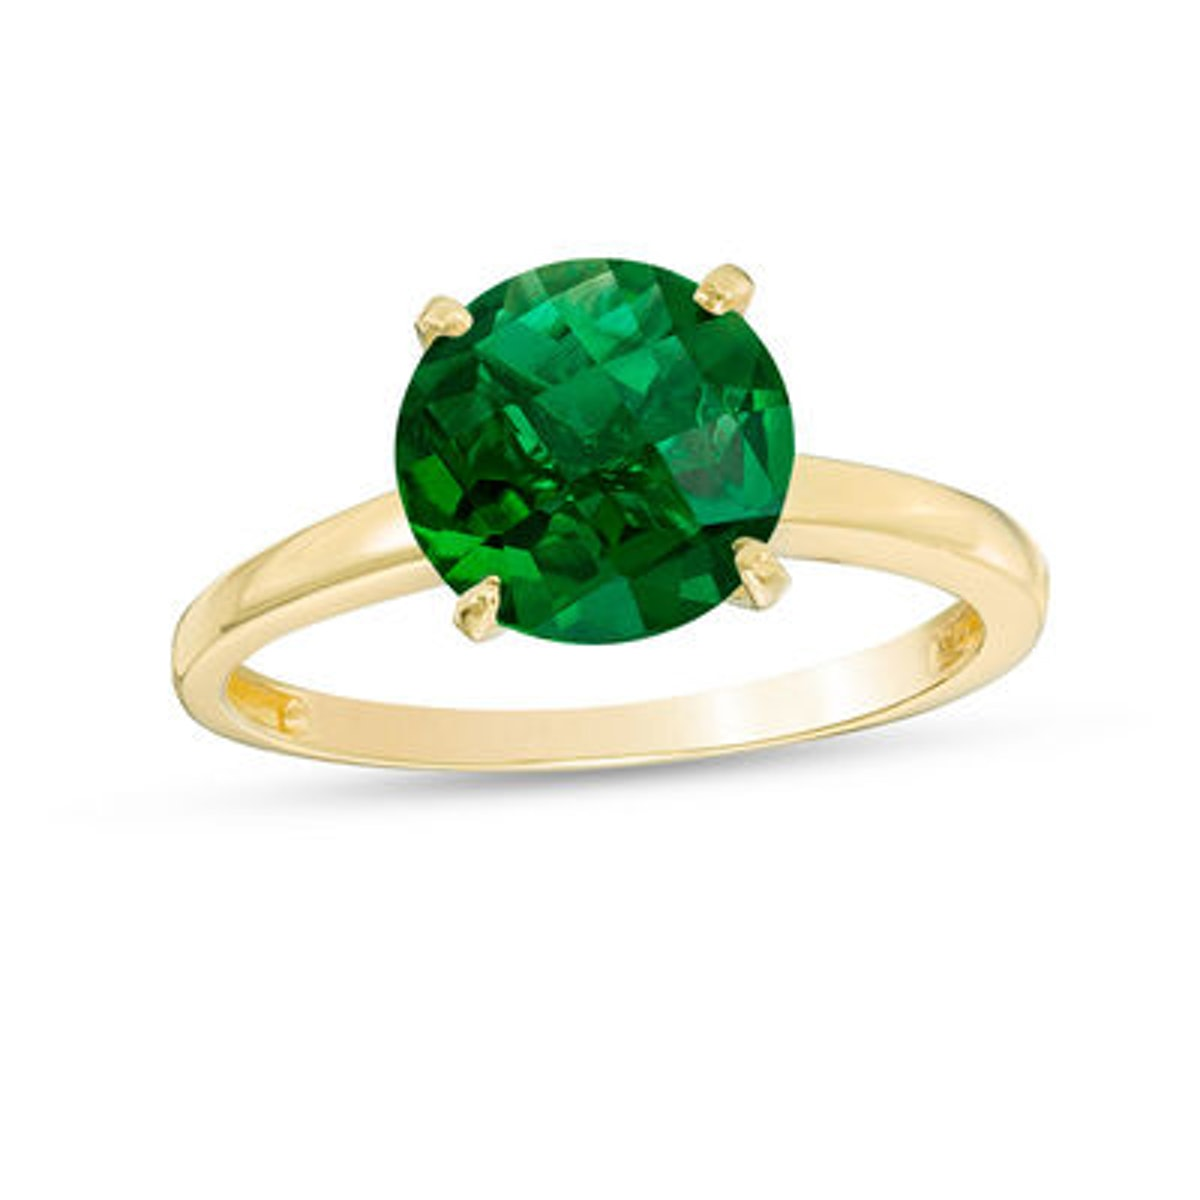 8.0mm Lab-Created Emerald Solitaire Ring in 10K Gold